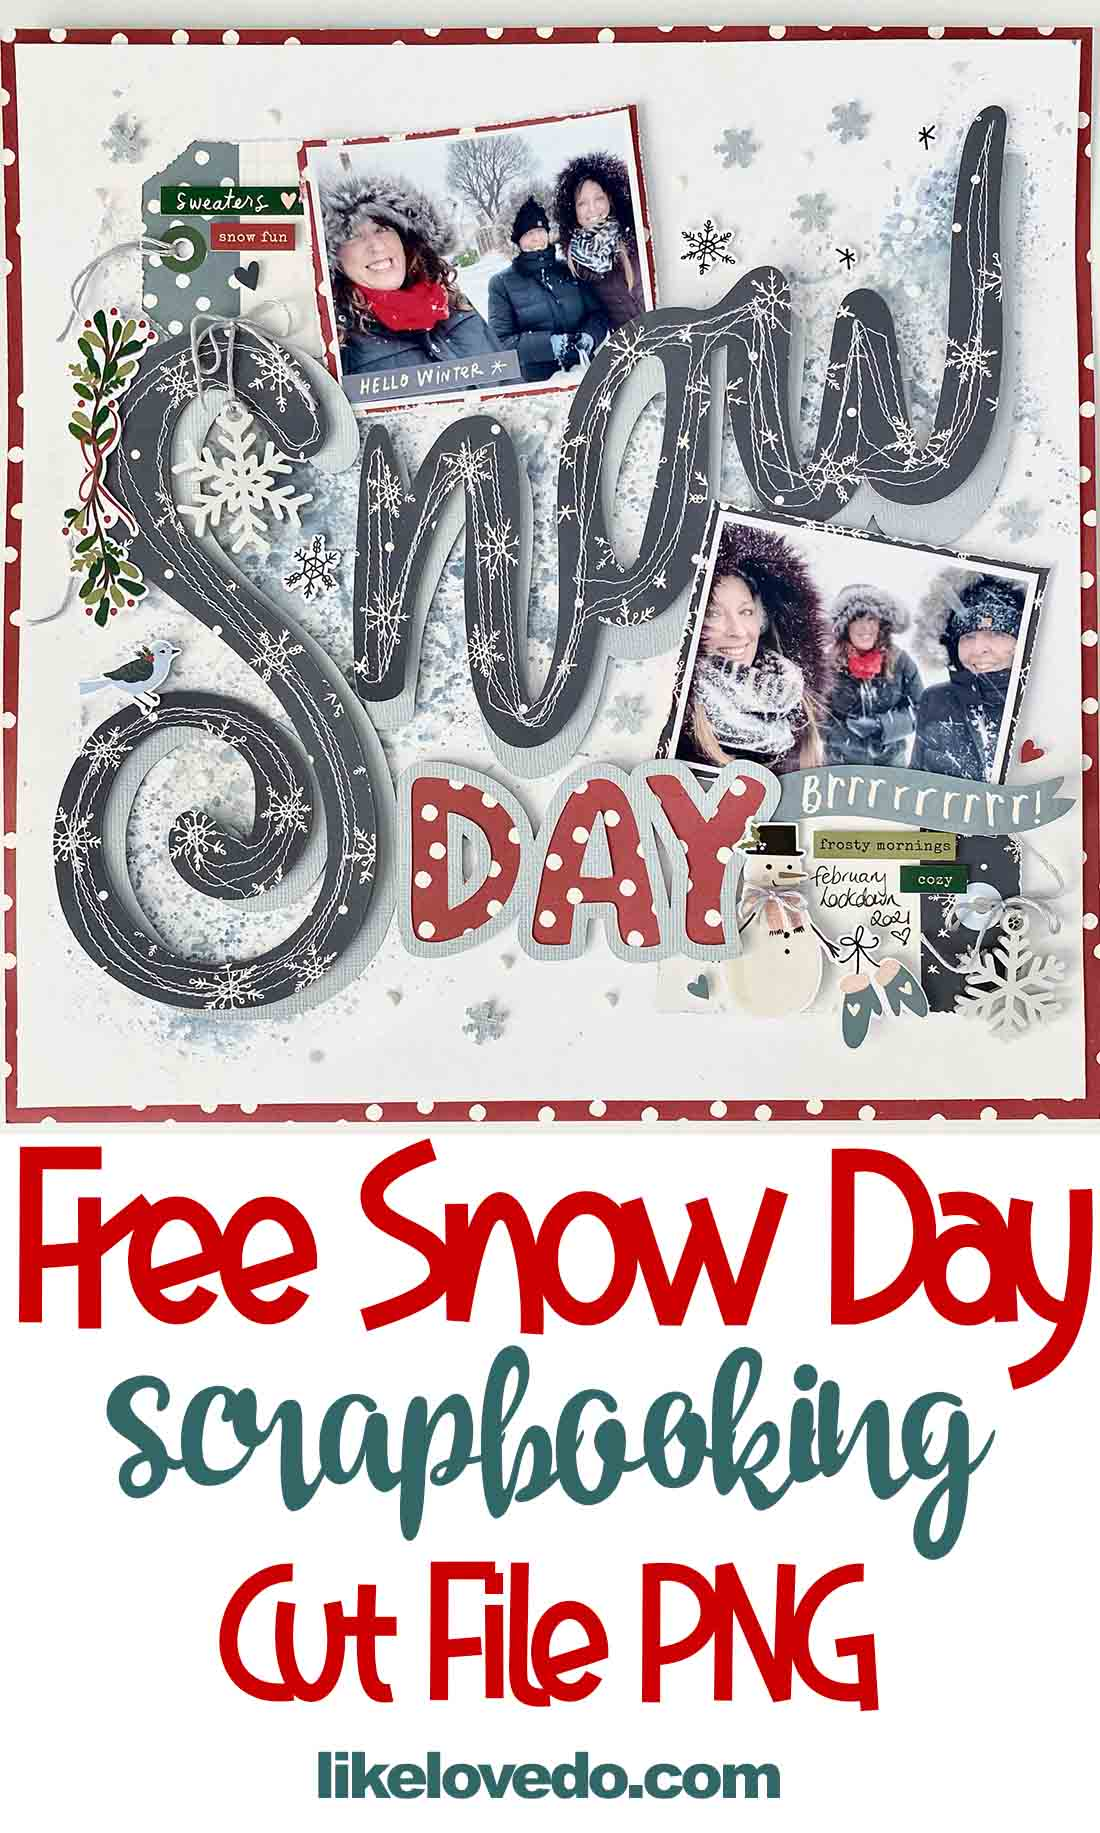 Free snow day scrapbooking cut file